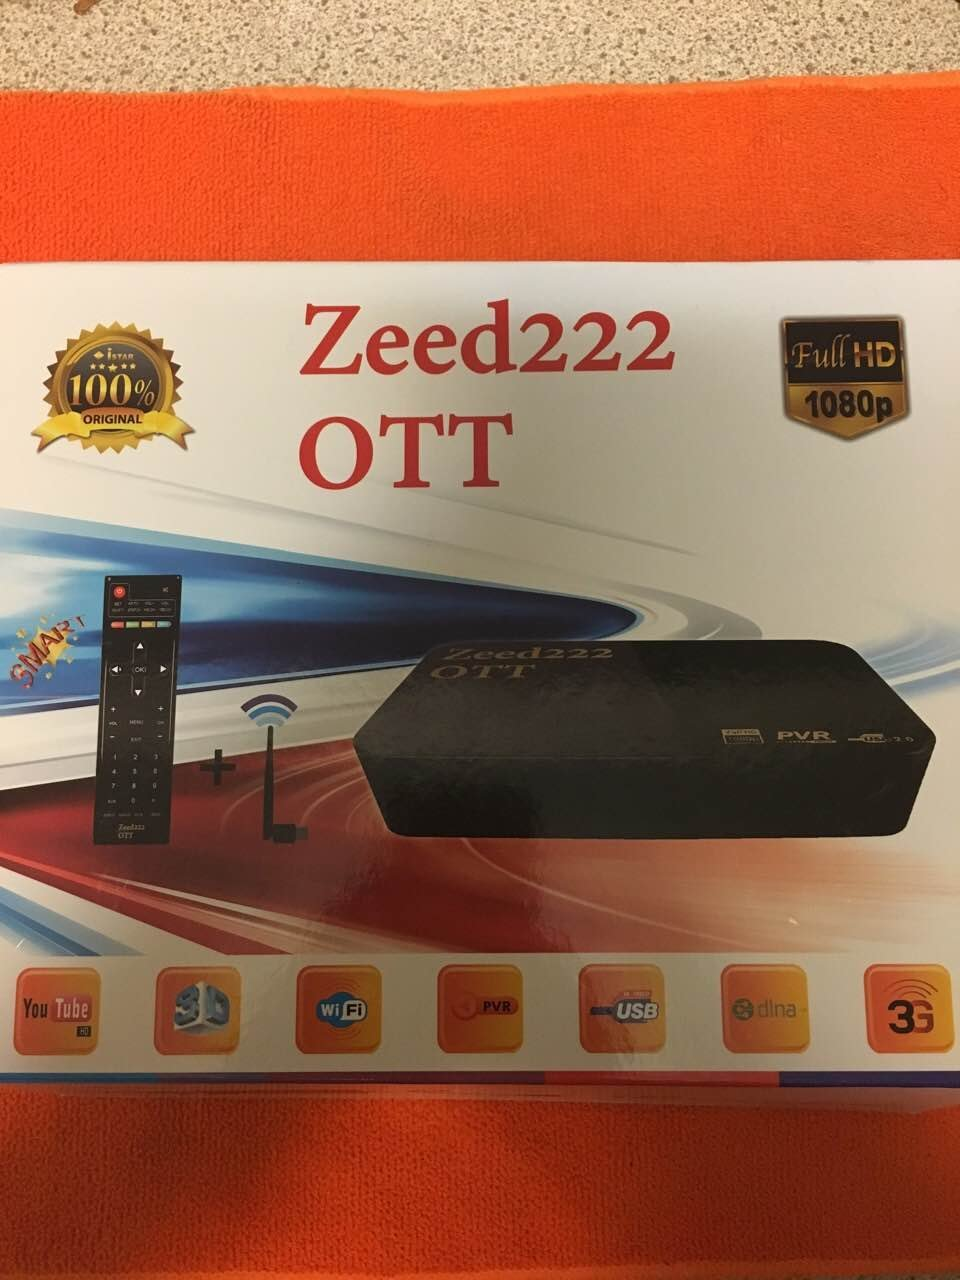 new iStar 2017 IPTV Box, the Zeed222 OTT is the newest iStar product comes with ONE YEAR FREE subscription. Over 1200+ Arabic, Kurdish, and European Channels